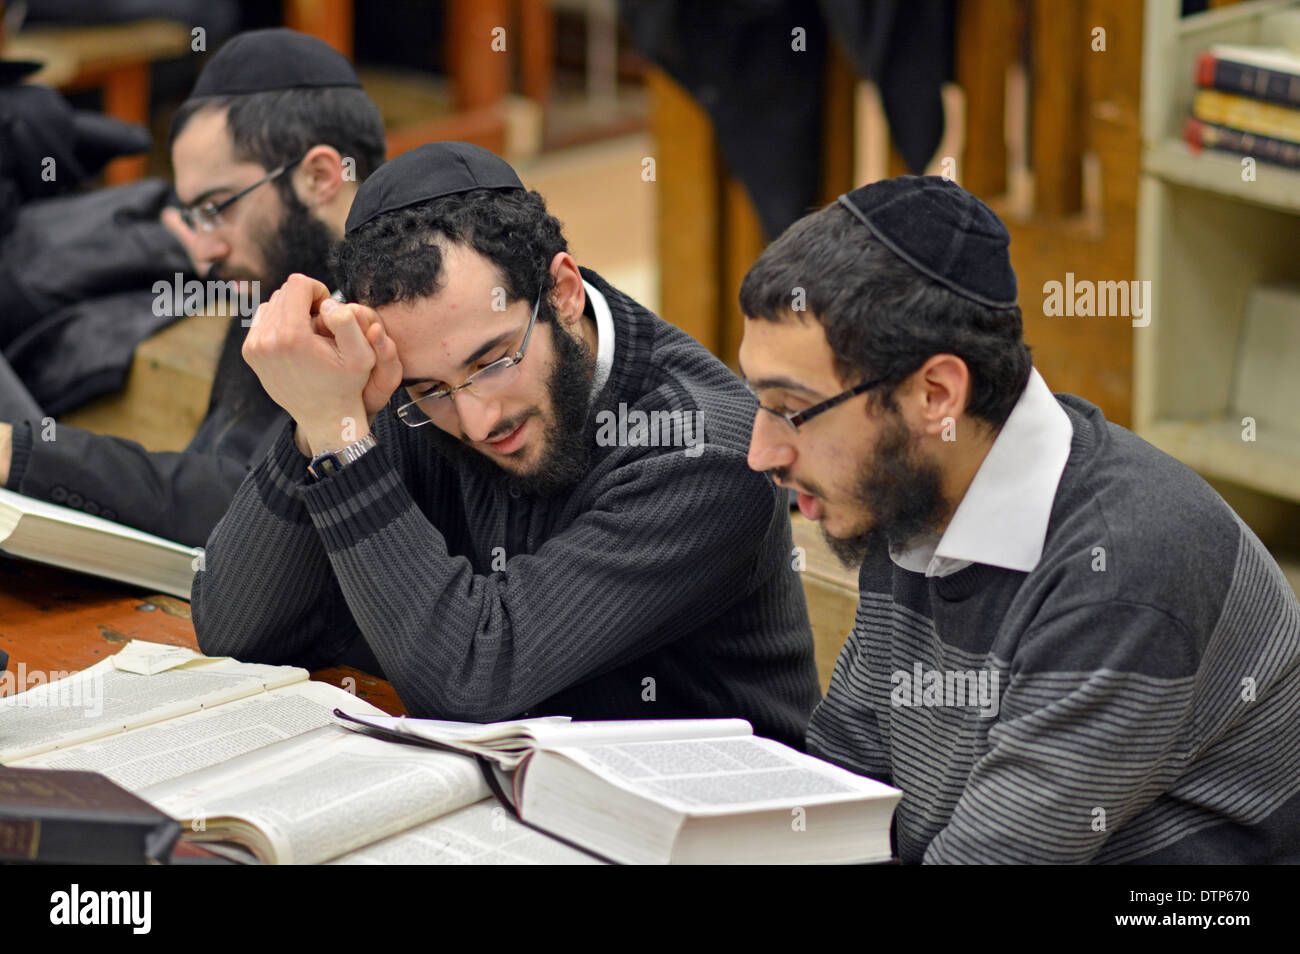 Lubavitch Hassidic students studying Talmud at their headquarters and synagogue at 770 Eastern Parkway in Brooklyn, New York. - Stock Image